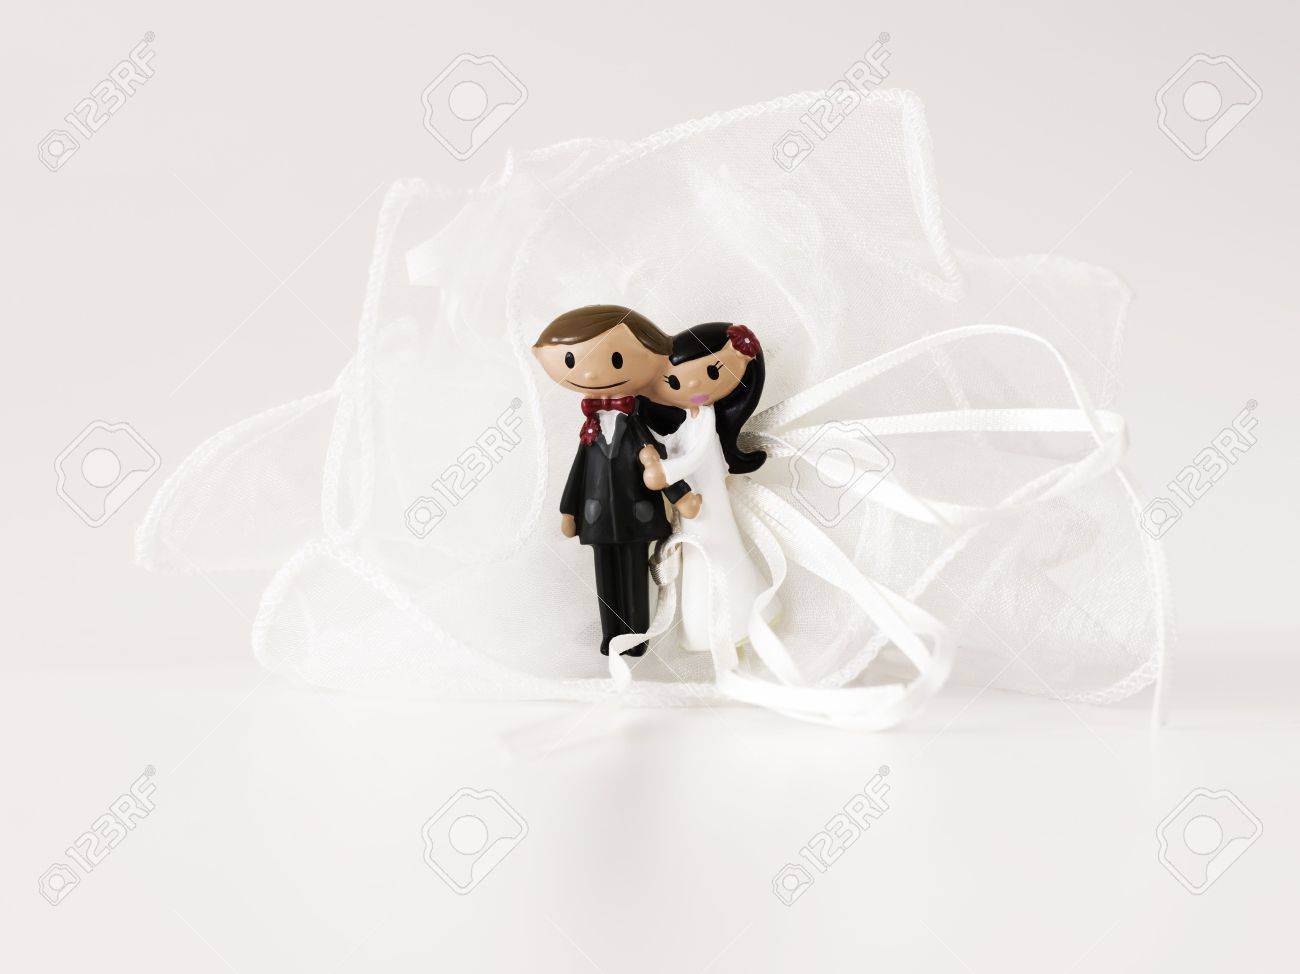 Puppets Of A Wedding Favor Sculpture Stock Photo, Picture And ...